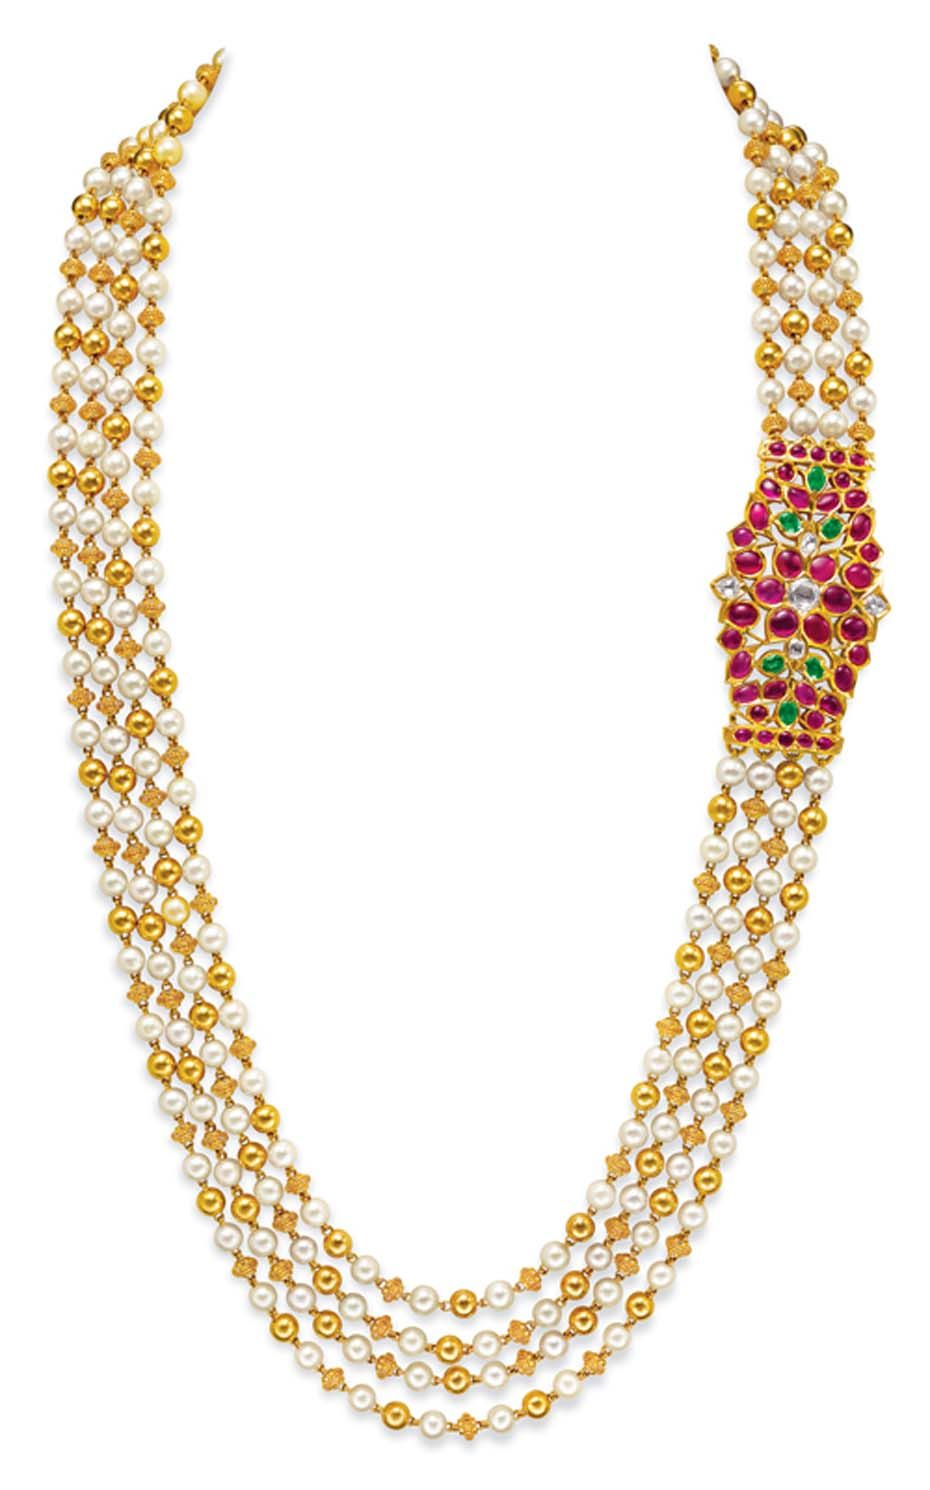 Ganjam's Pearl And Gold Beaded Multistring Necklace With A Rubyset